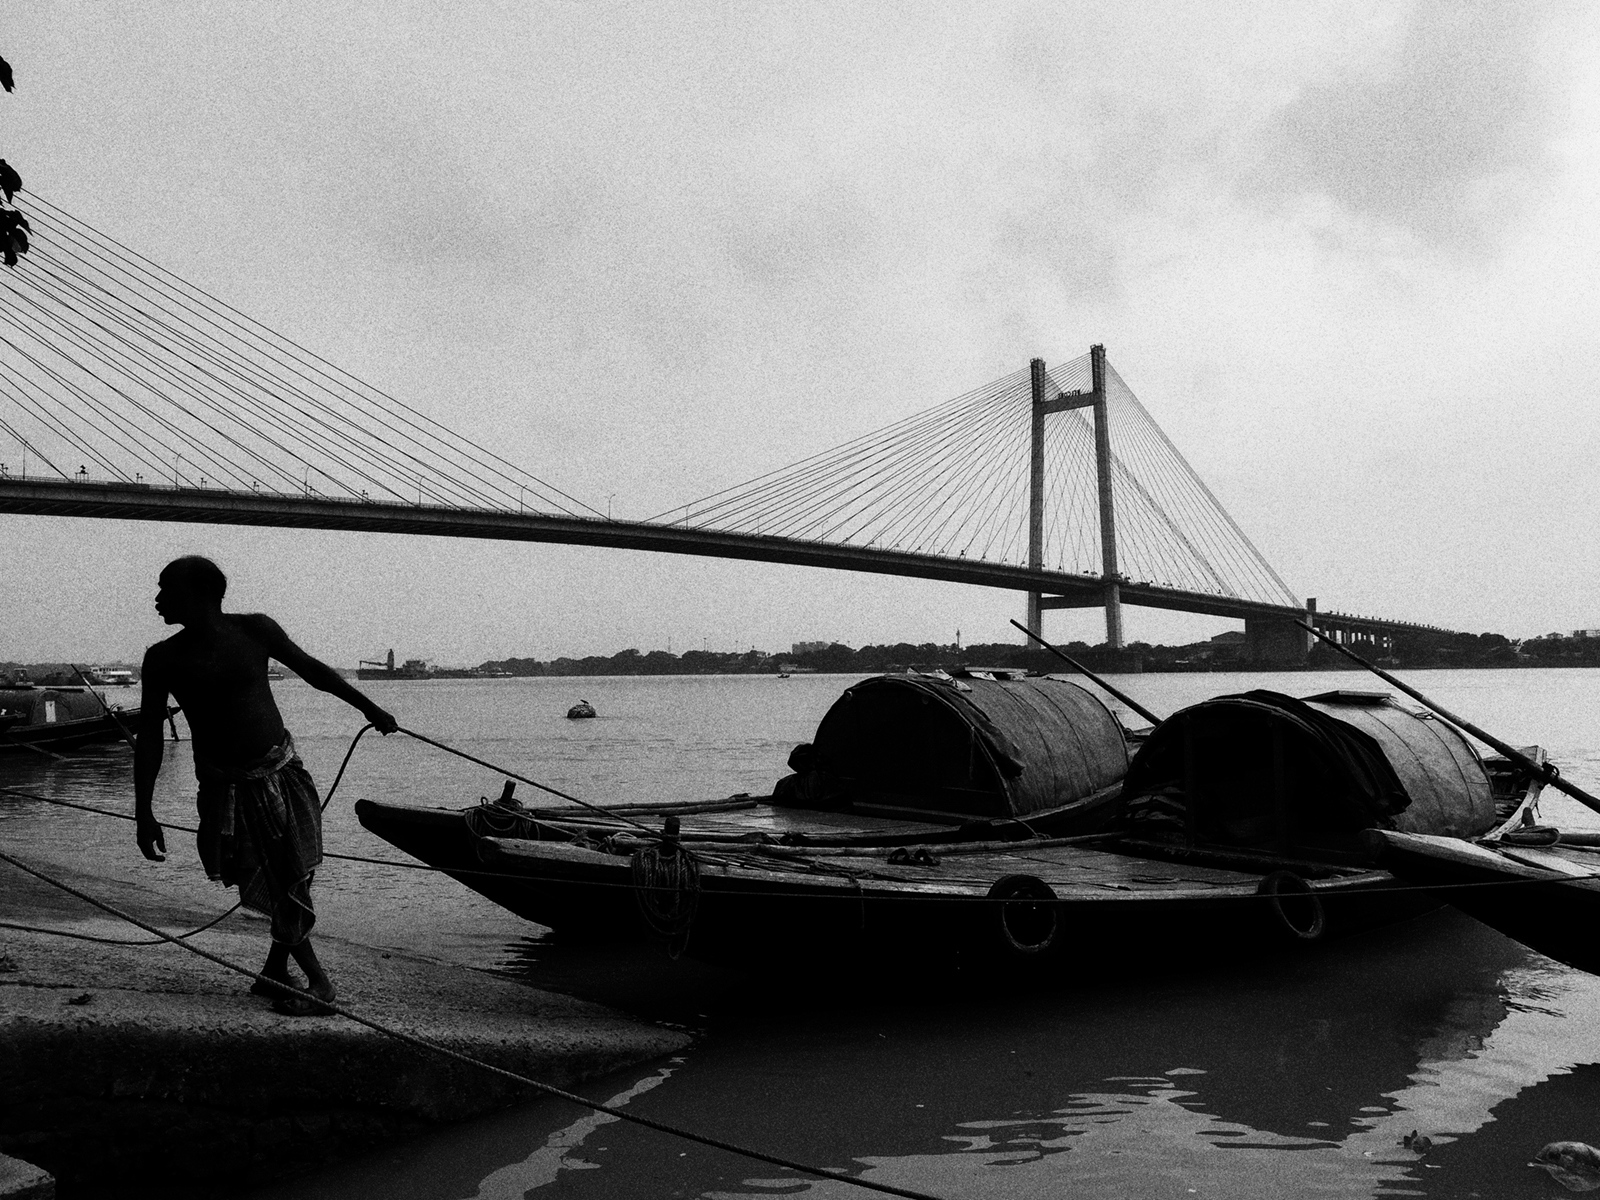 A boatman tends to his boat at Princep Ghat...